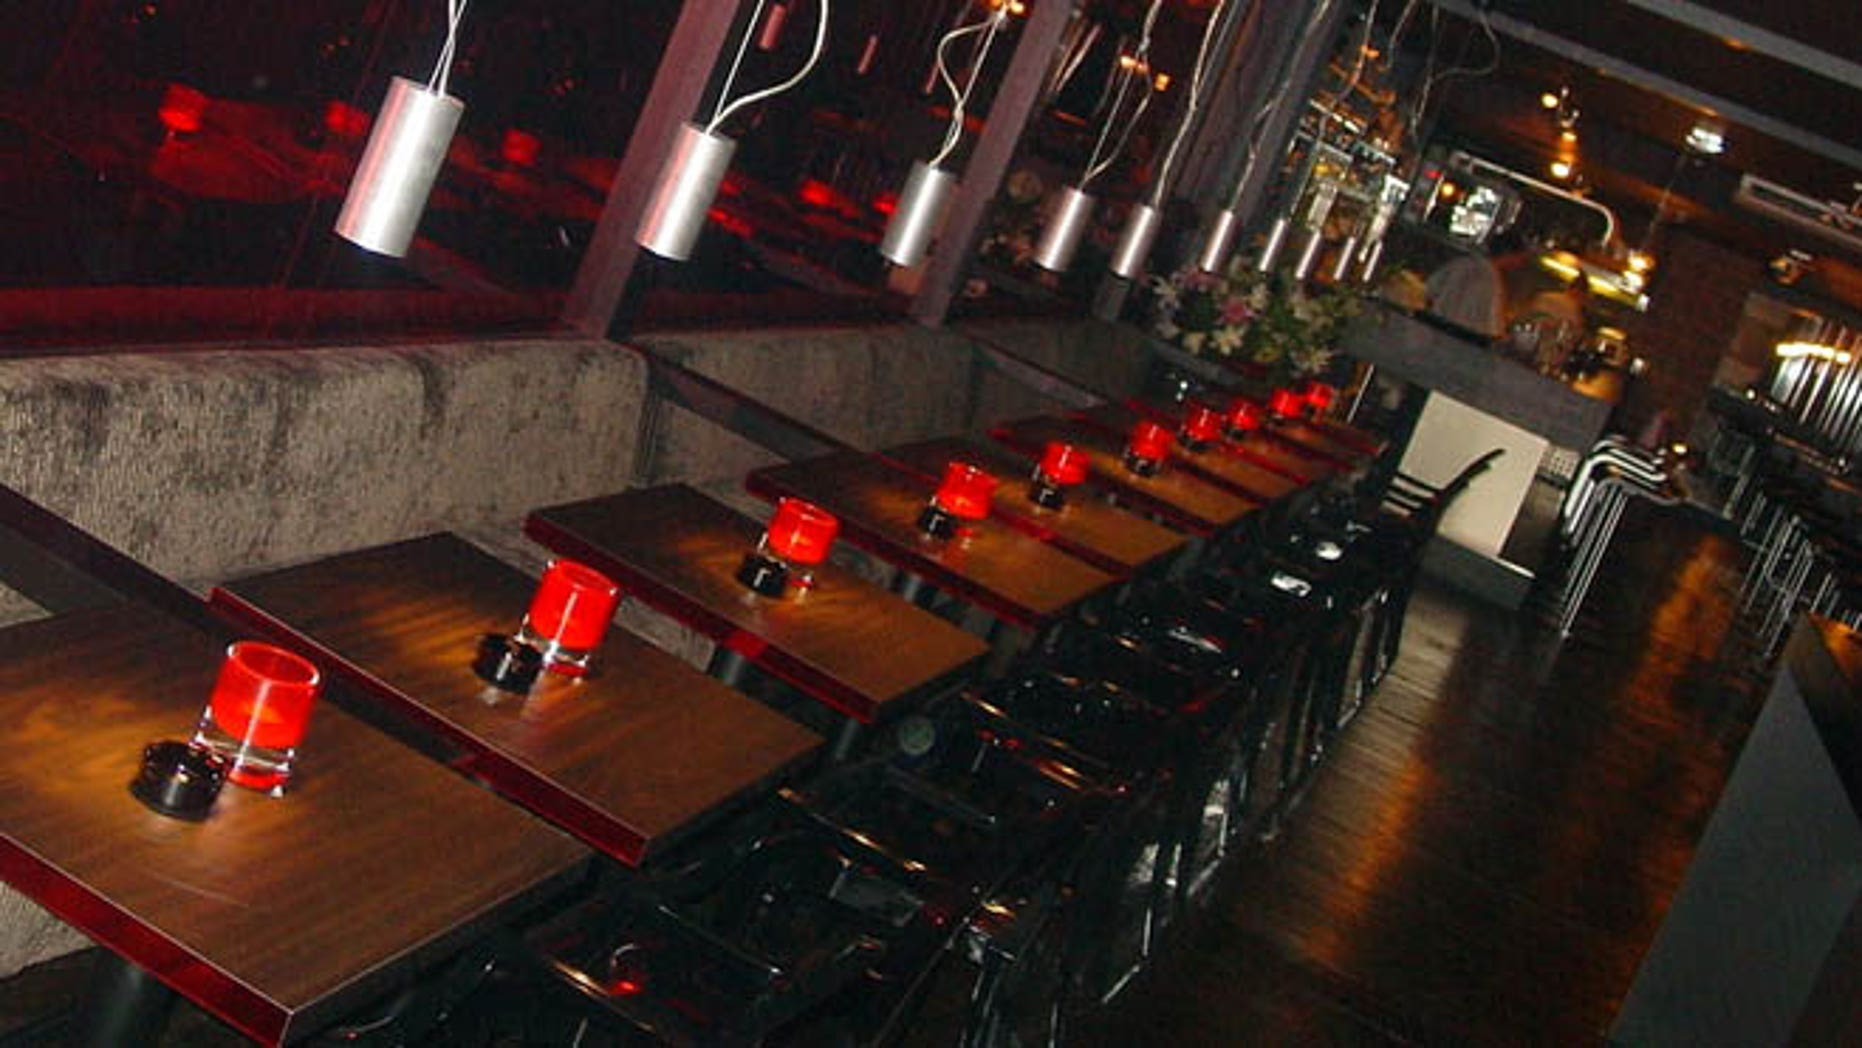 Bubbles Seafood & Wine Bar, the sister restaurant of Amsterdam's Bubbles & Wines (shown here), is a wine, champagne, and raw seafood bar.